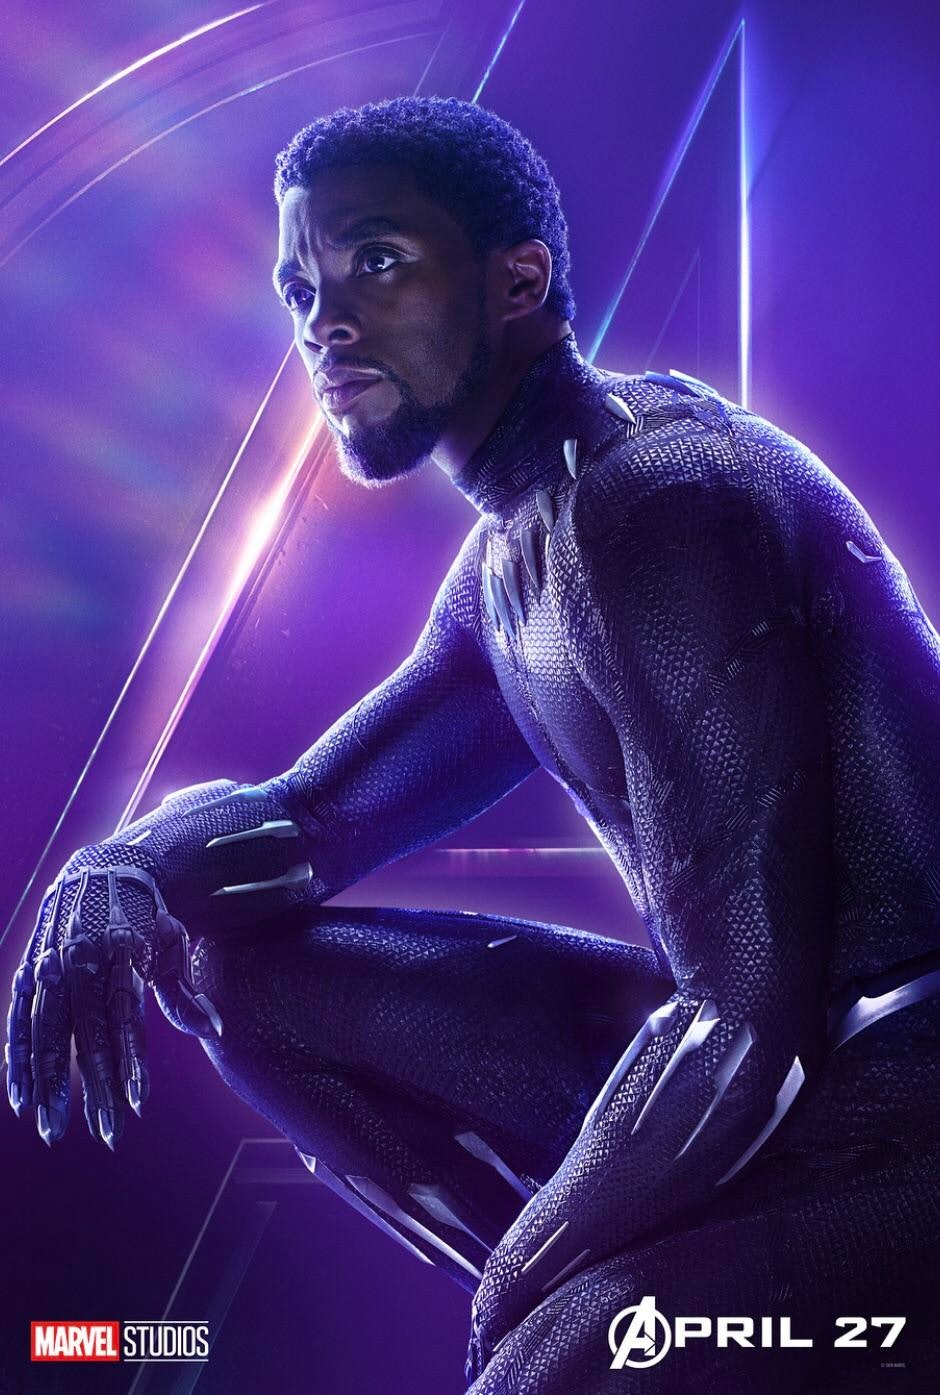 Black Panther 2 Just Got Rescheduled To February 2021 According To Fans